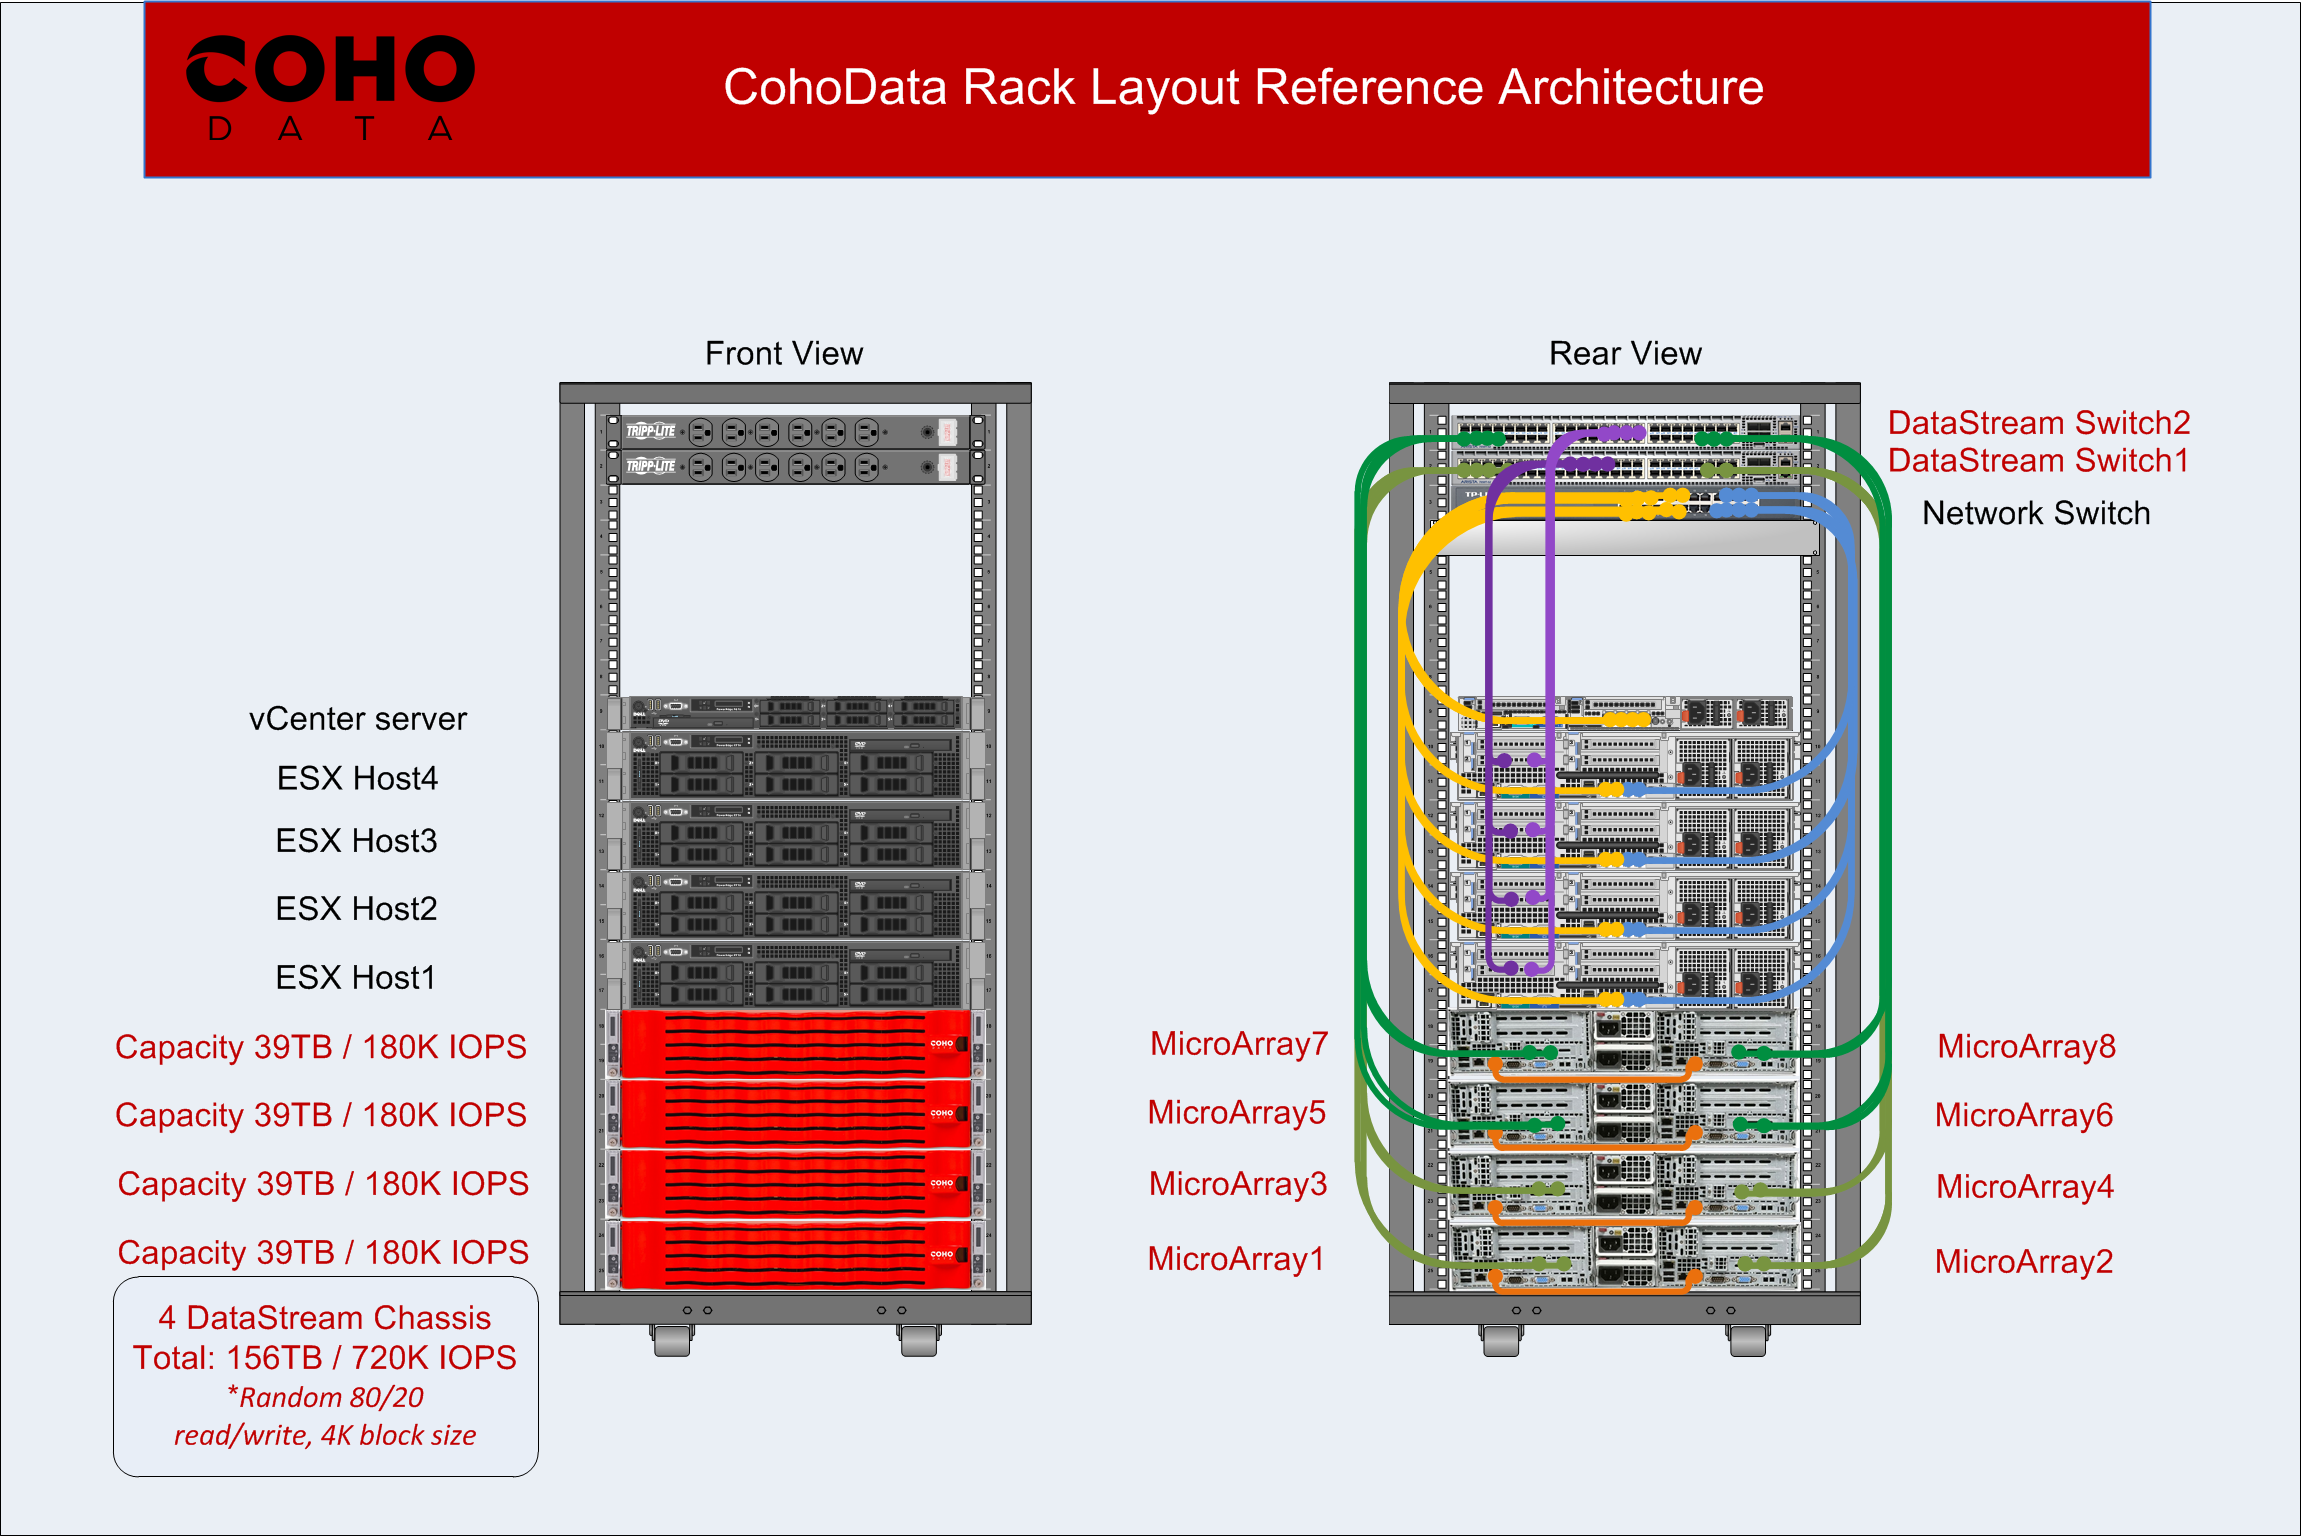 Coho Data Rack Layout Marketing Ref Architecture